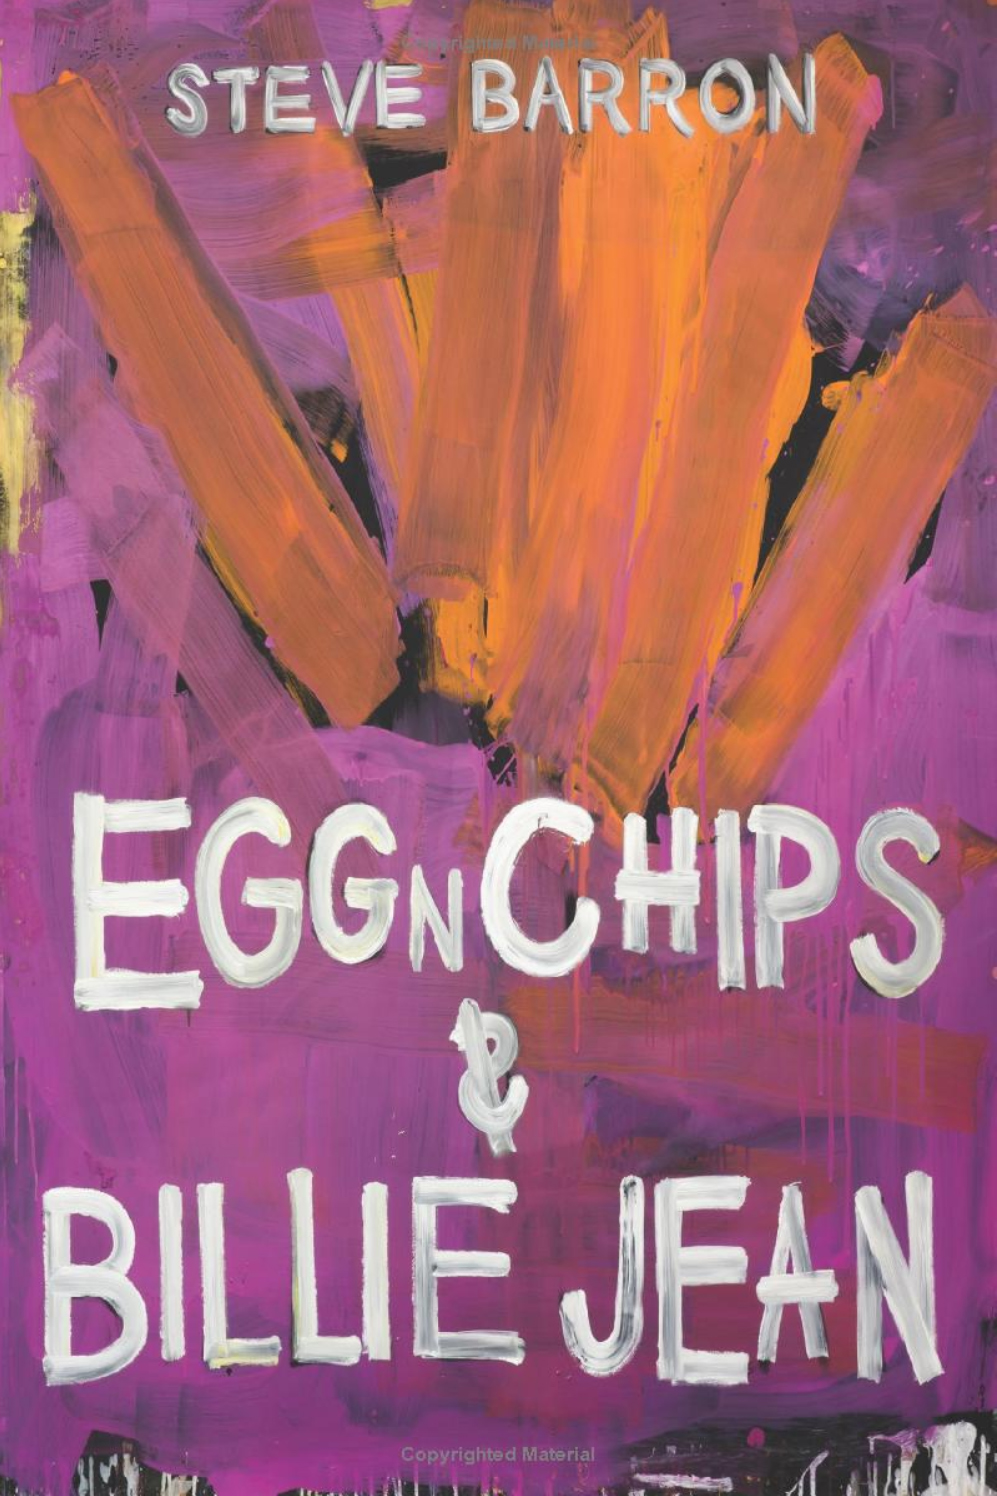 STEVE BARRON - EGG N CHIPS & BILLIE JEAN A TRIP THROUGH THE EIGHTIES